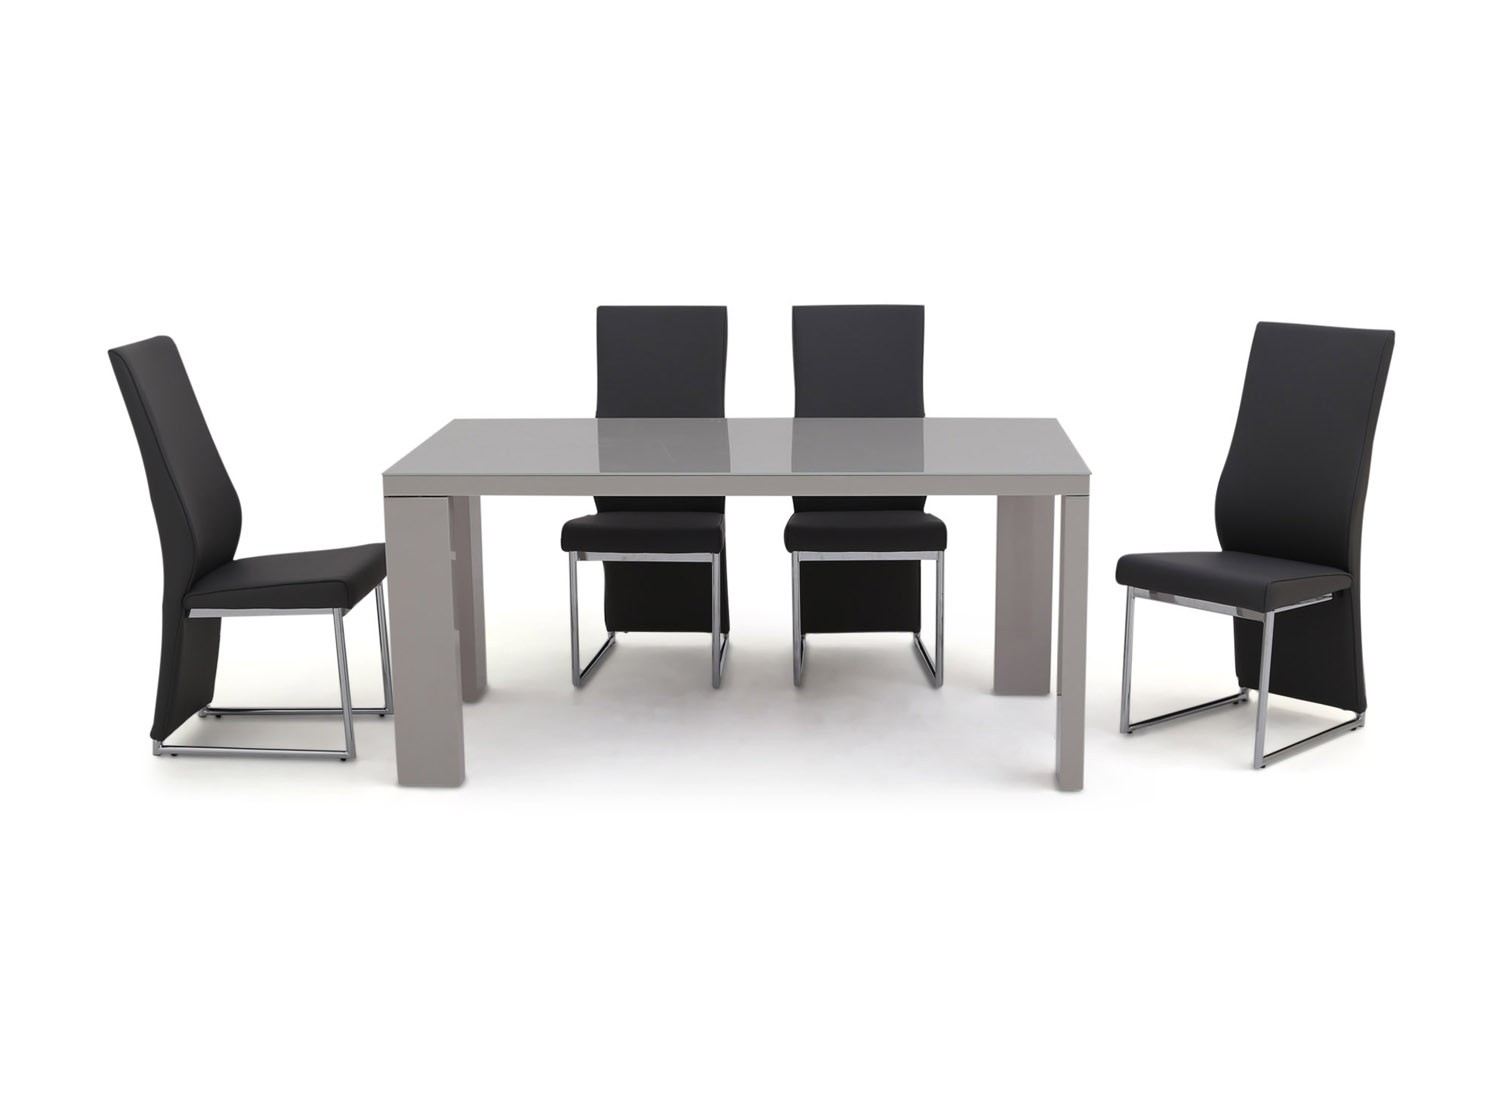 https://www.firstfurniture.co.uk/pub/media/catalog/product/f/a/fairmont_lucca_grey_high_gloss_dining_table_6_remo_grey_chairs.jpg